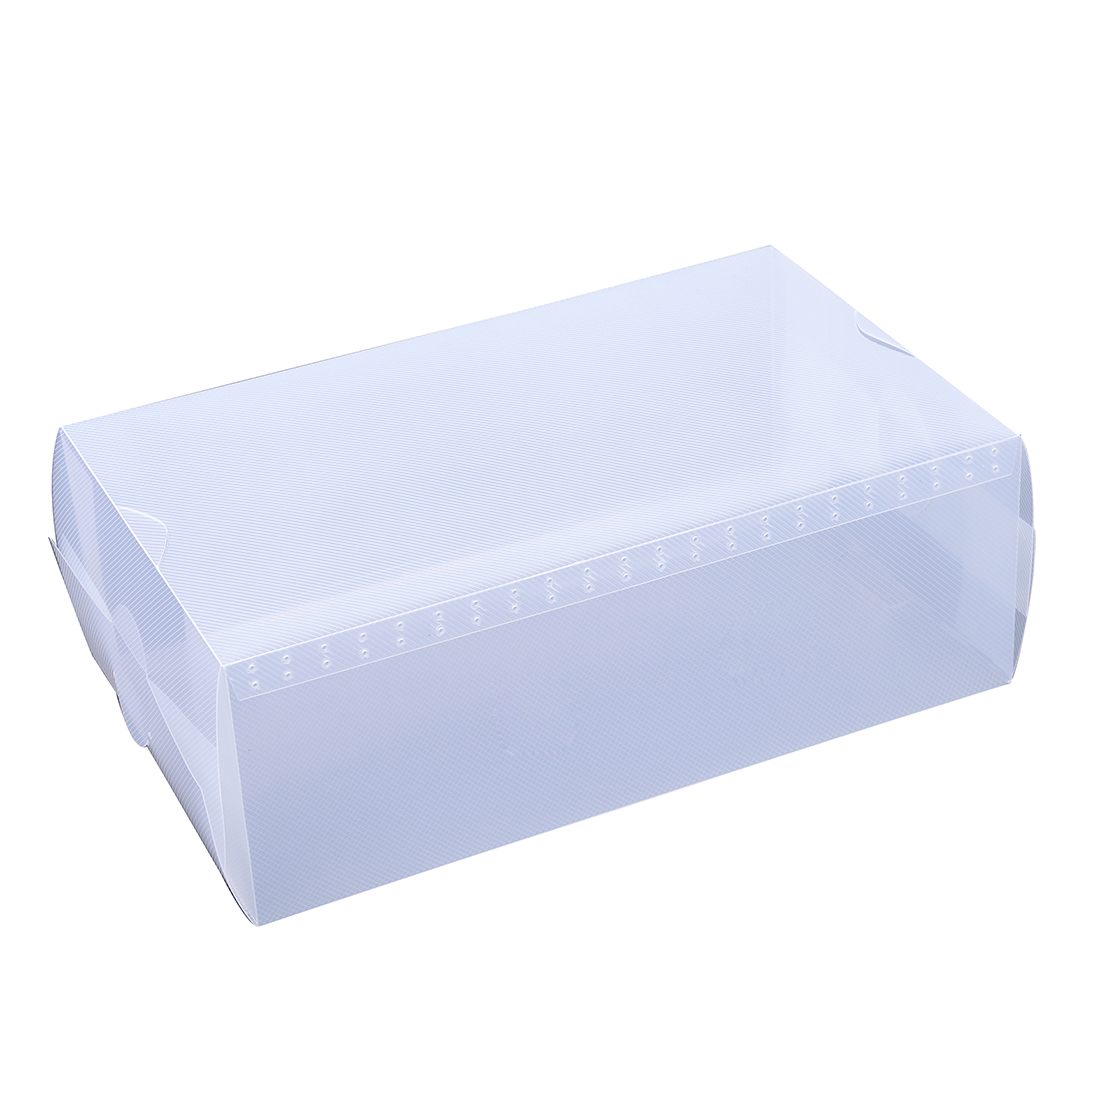 5 x clear plastic mens shoe storage boxes containers